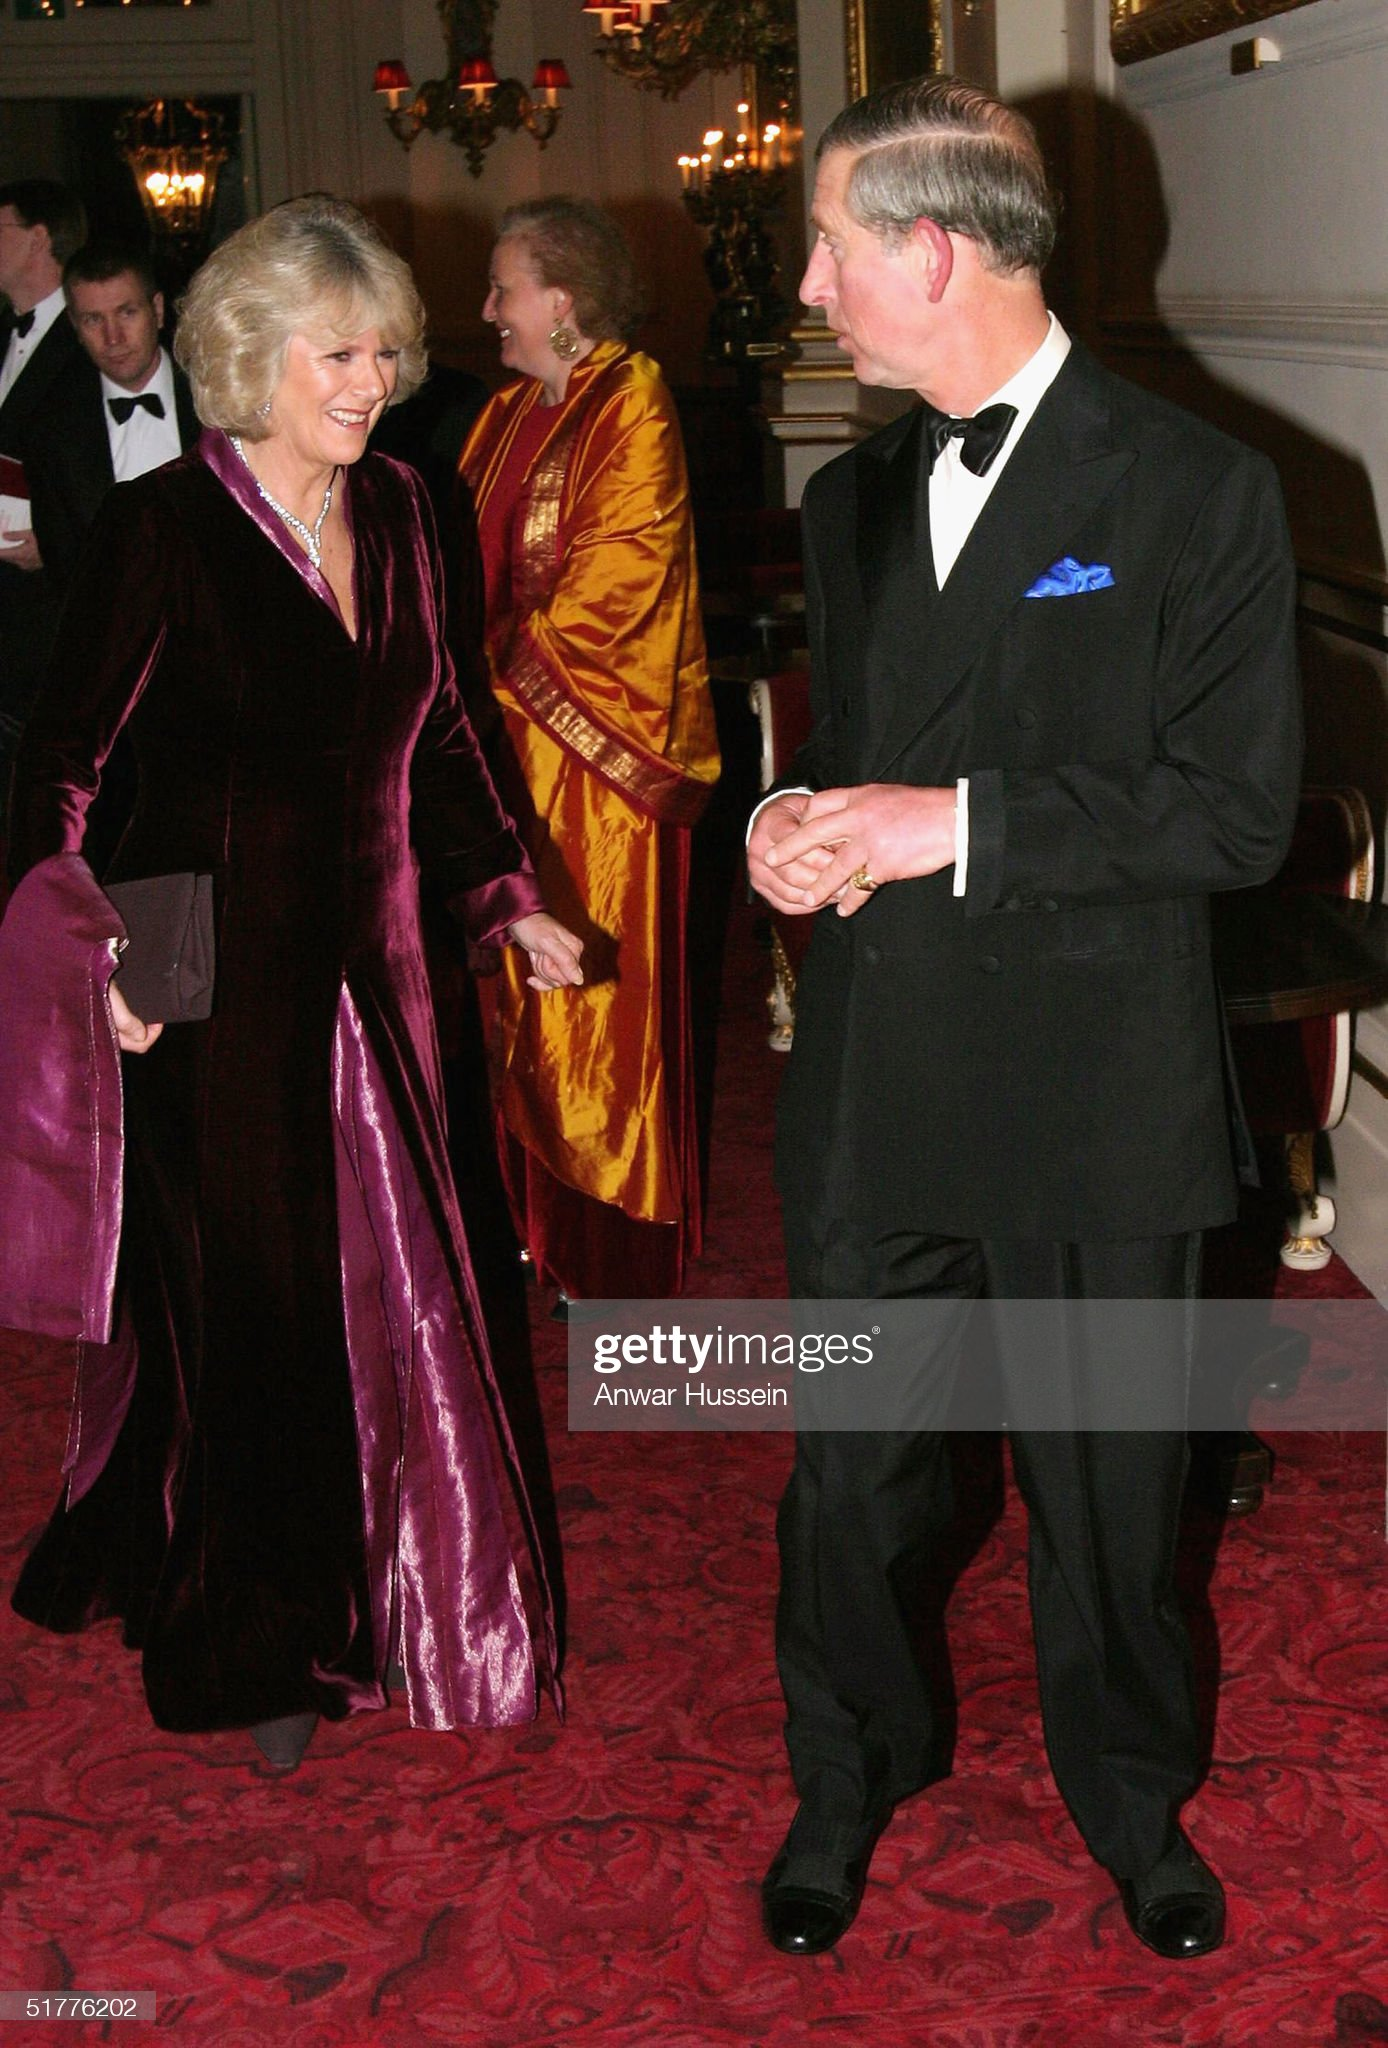 Prince Charles And Camilla Parker Bowles Arrive At The Royal Opera House : News Photo